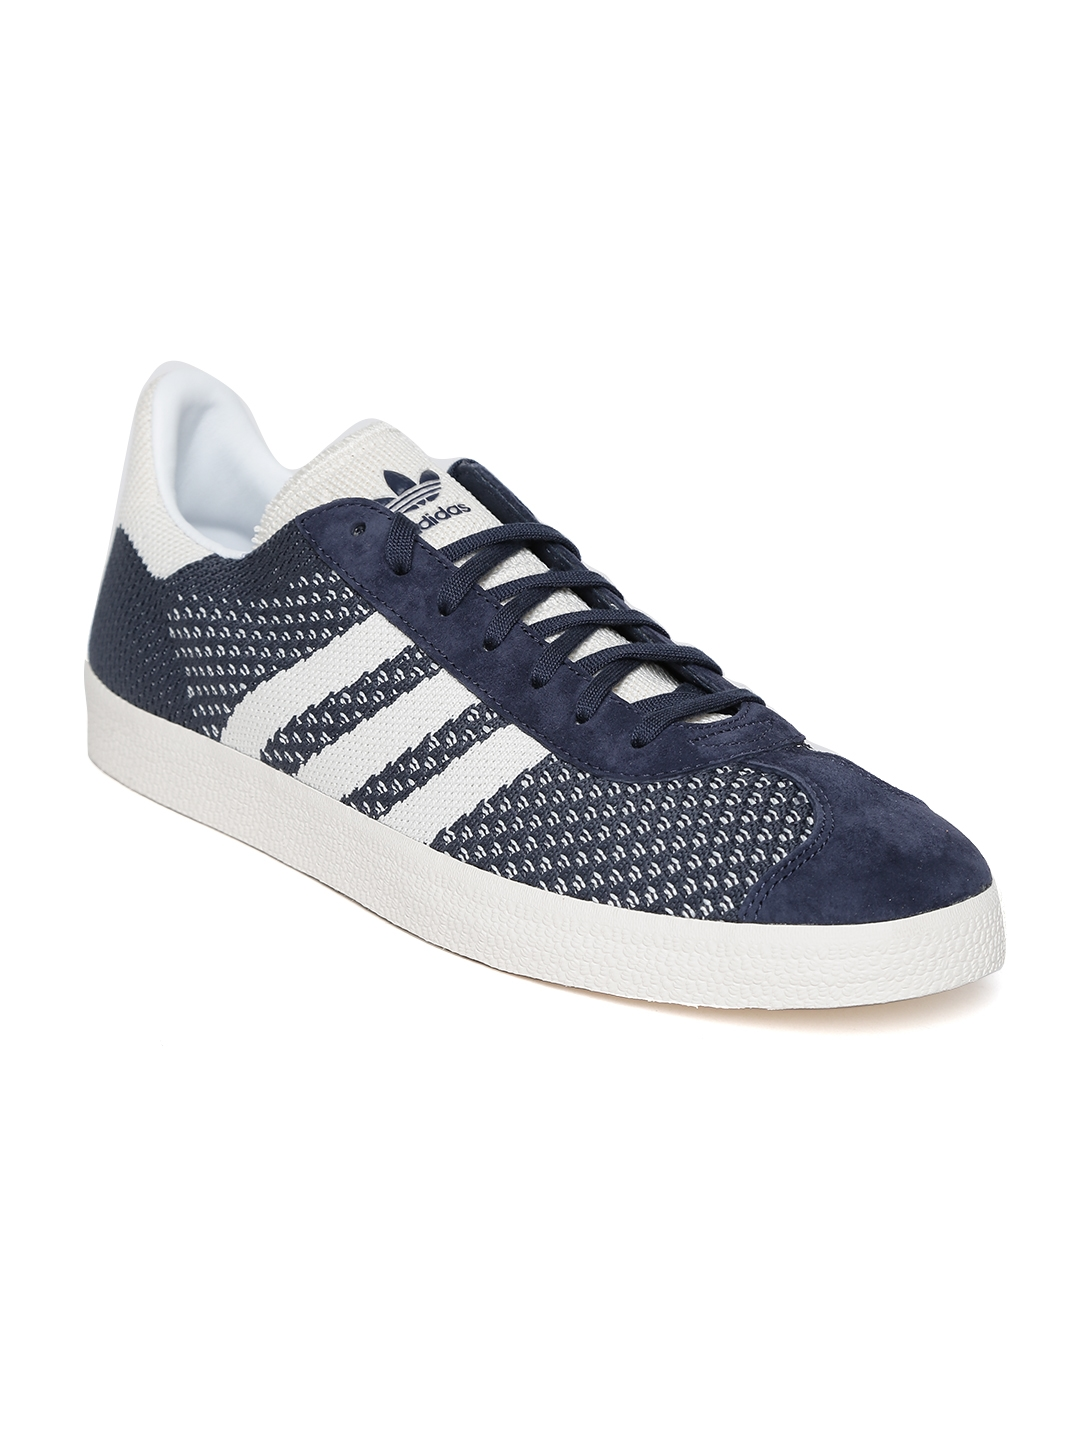 cheap for discount fa642 91520 ADIDAS Originals Men Navy GAZELLE PrimeKnit Sneakers